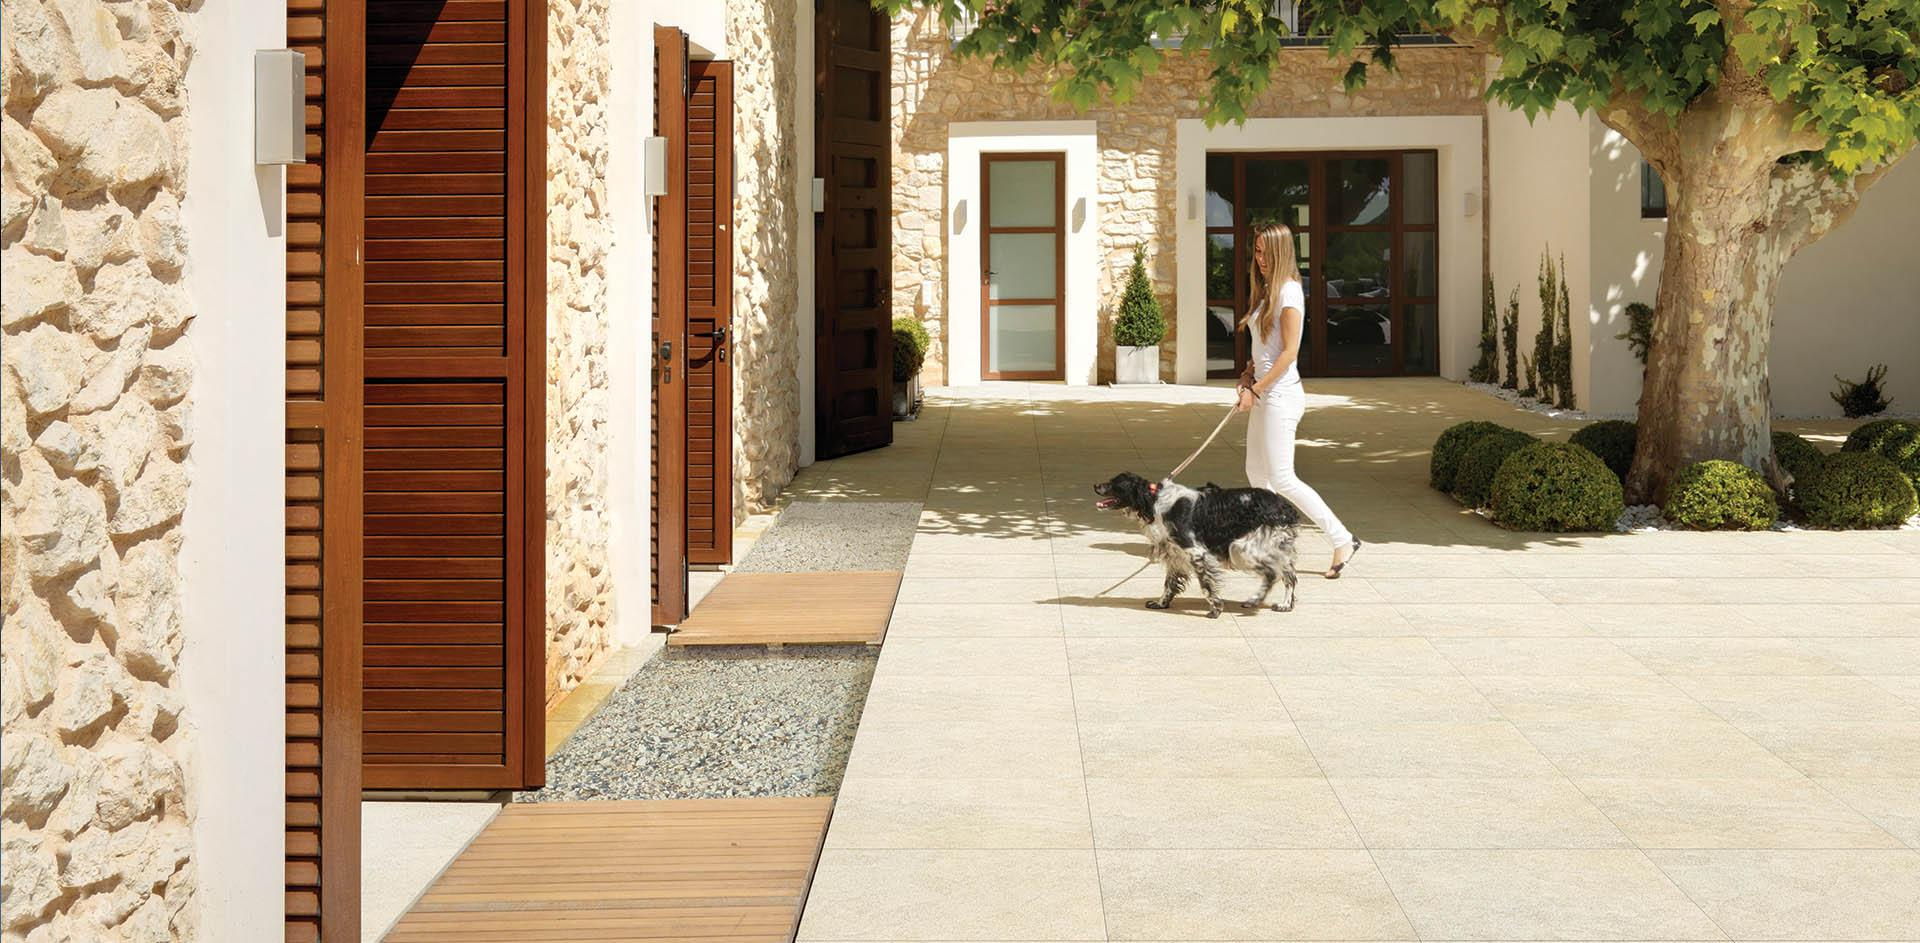 Outdoor pavements, tiles for raised floors - FMG Fabbrica Marmi e ...